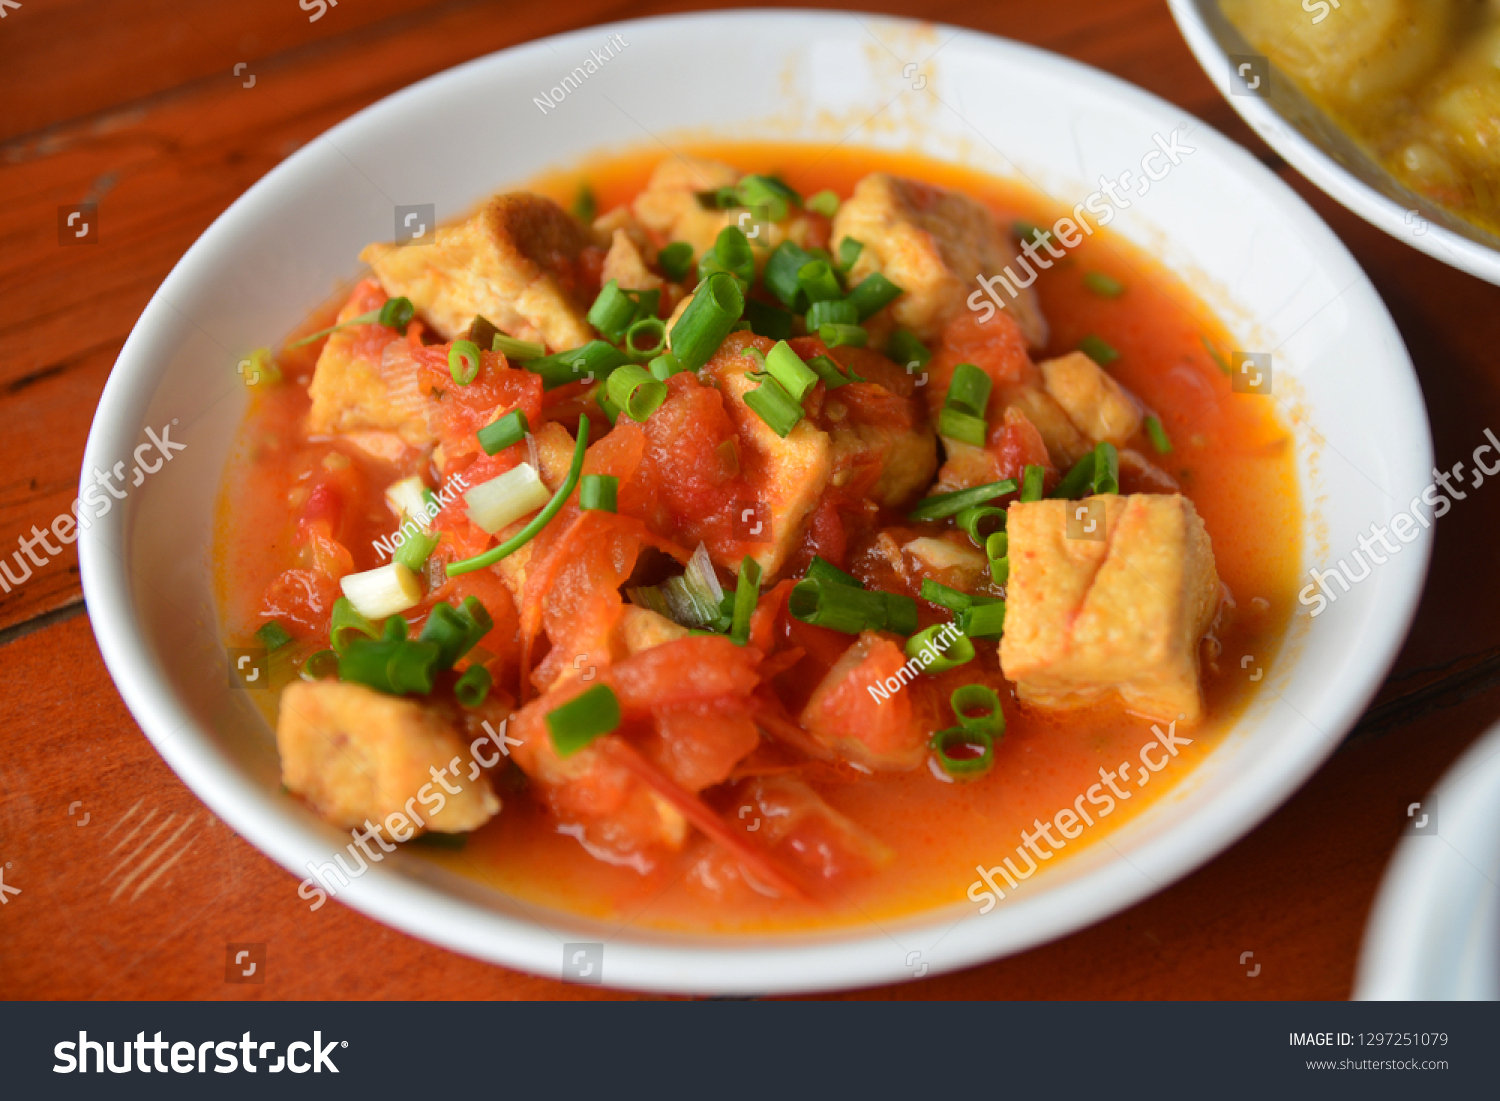 Ajoarriero tomato with tofu soup, Vietnam food #1297251079